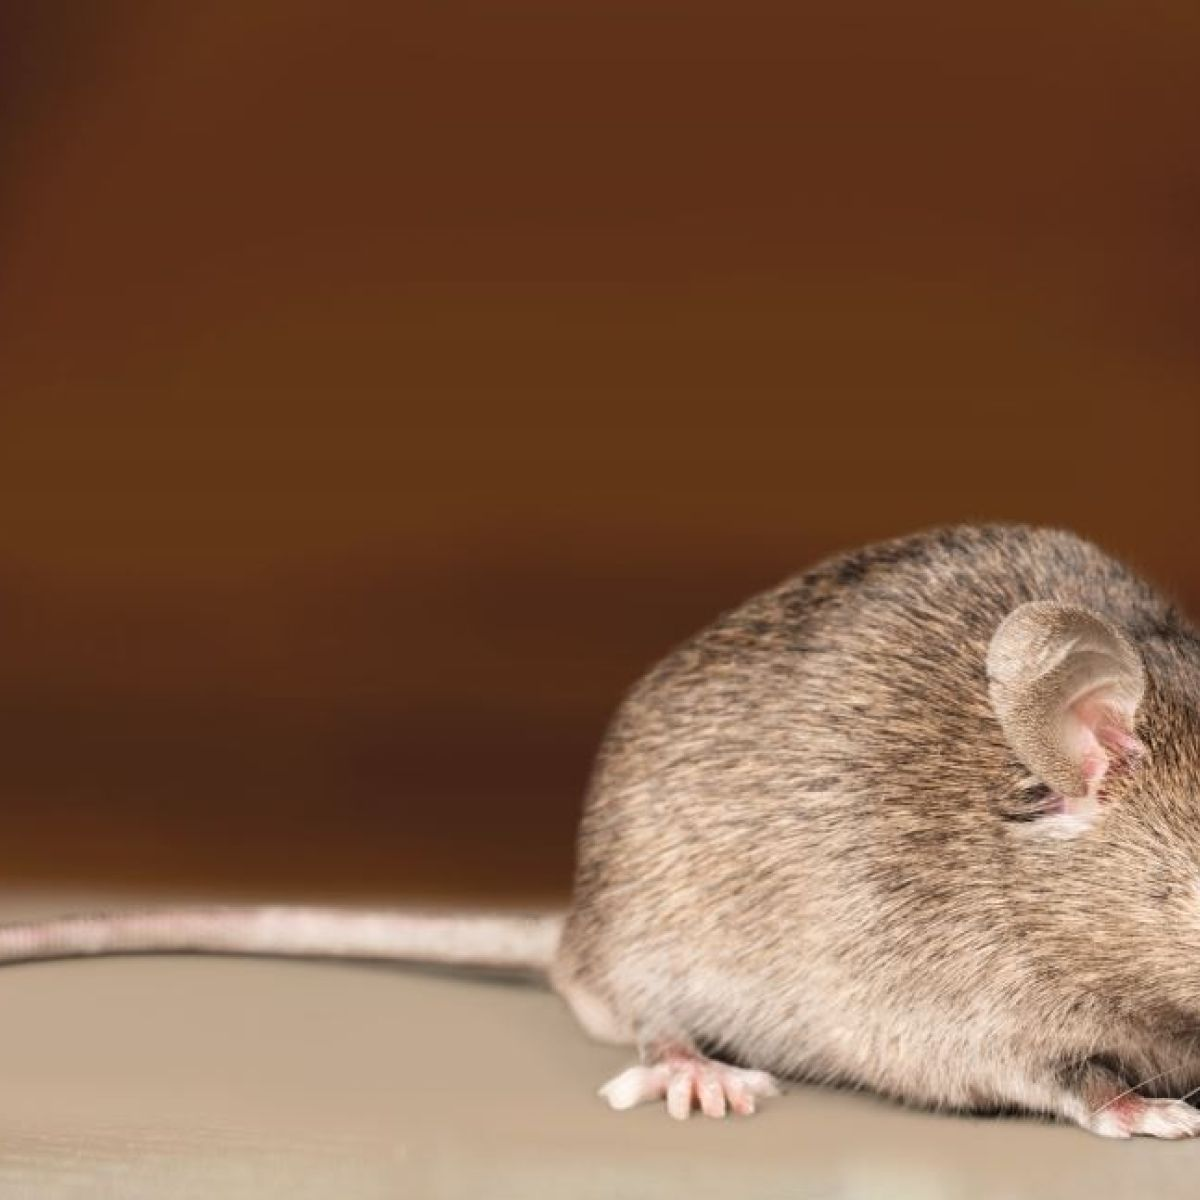 Dublin 4 restaurant closed after live mouse found in kitchen